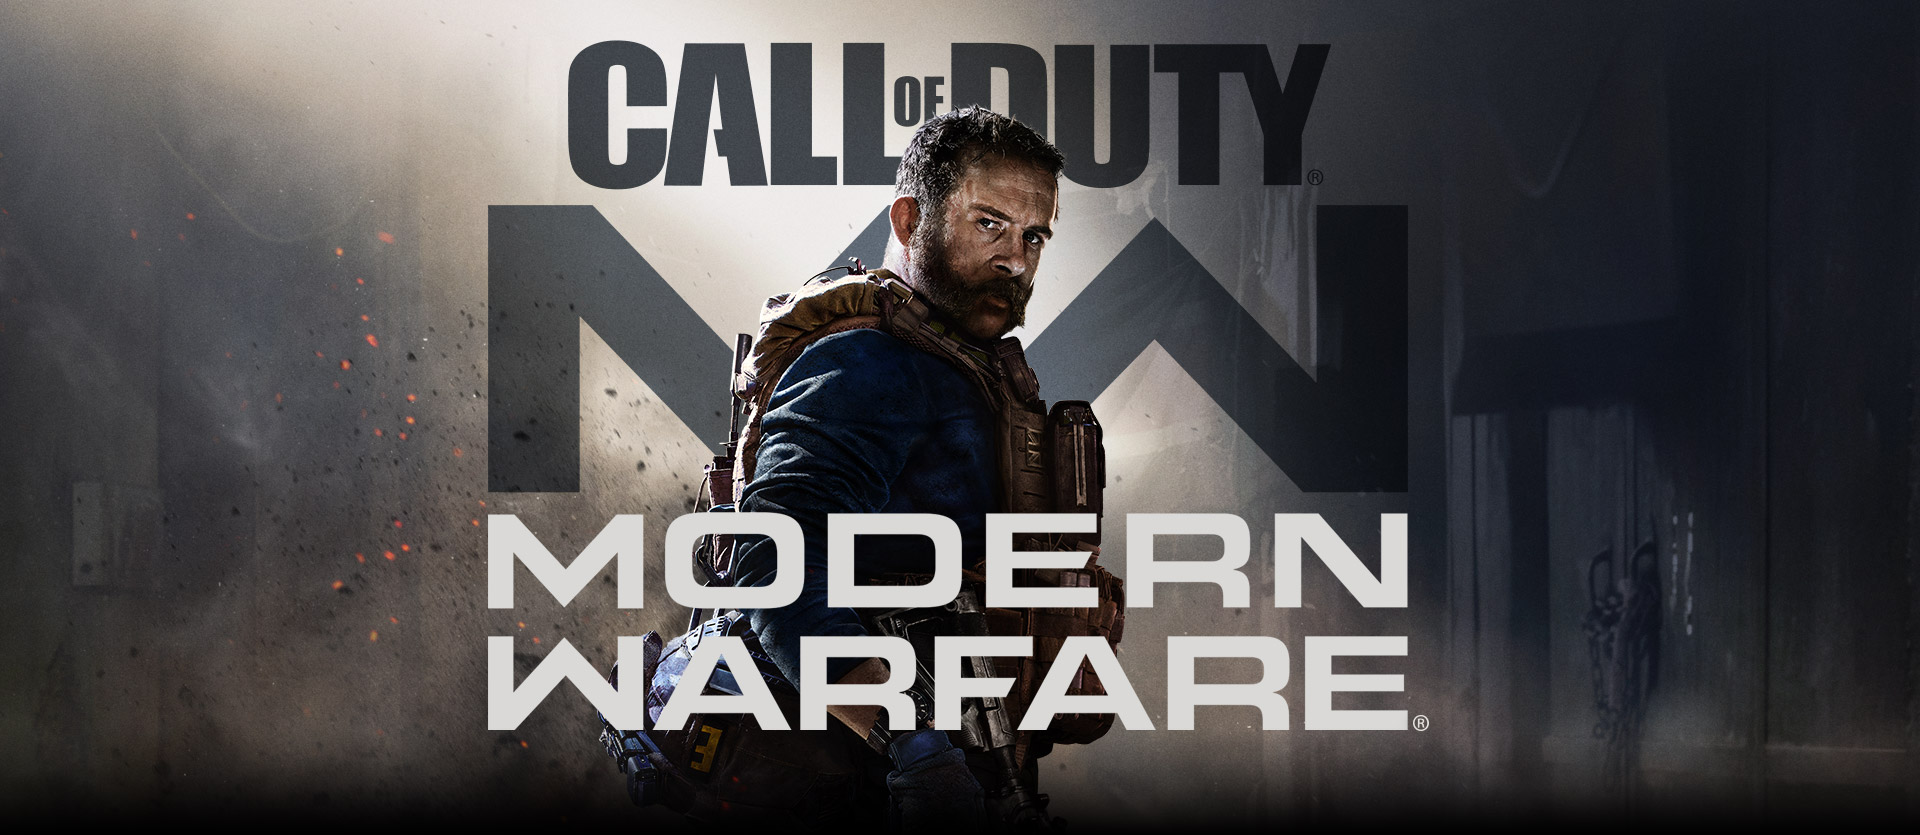 Logo de Call of Duty: Modern Warfare avec le capitaine Price en bleu et portant une veste militaire